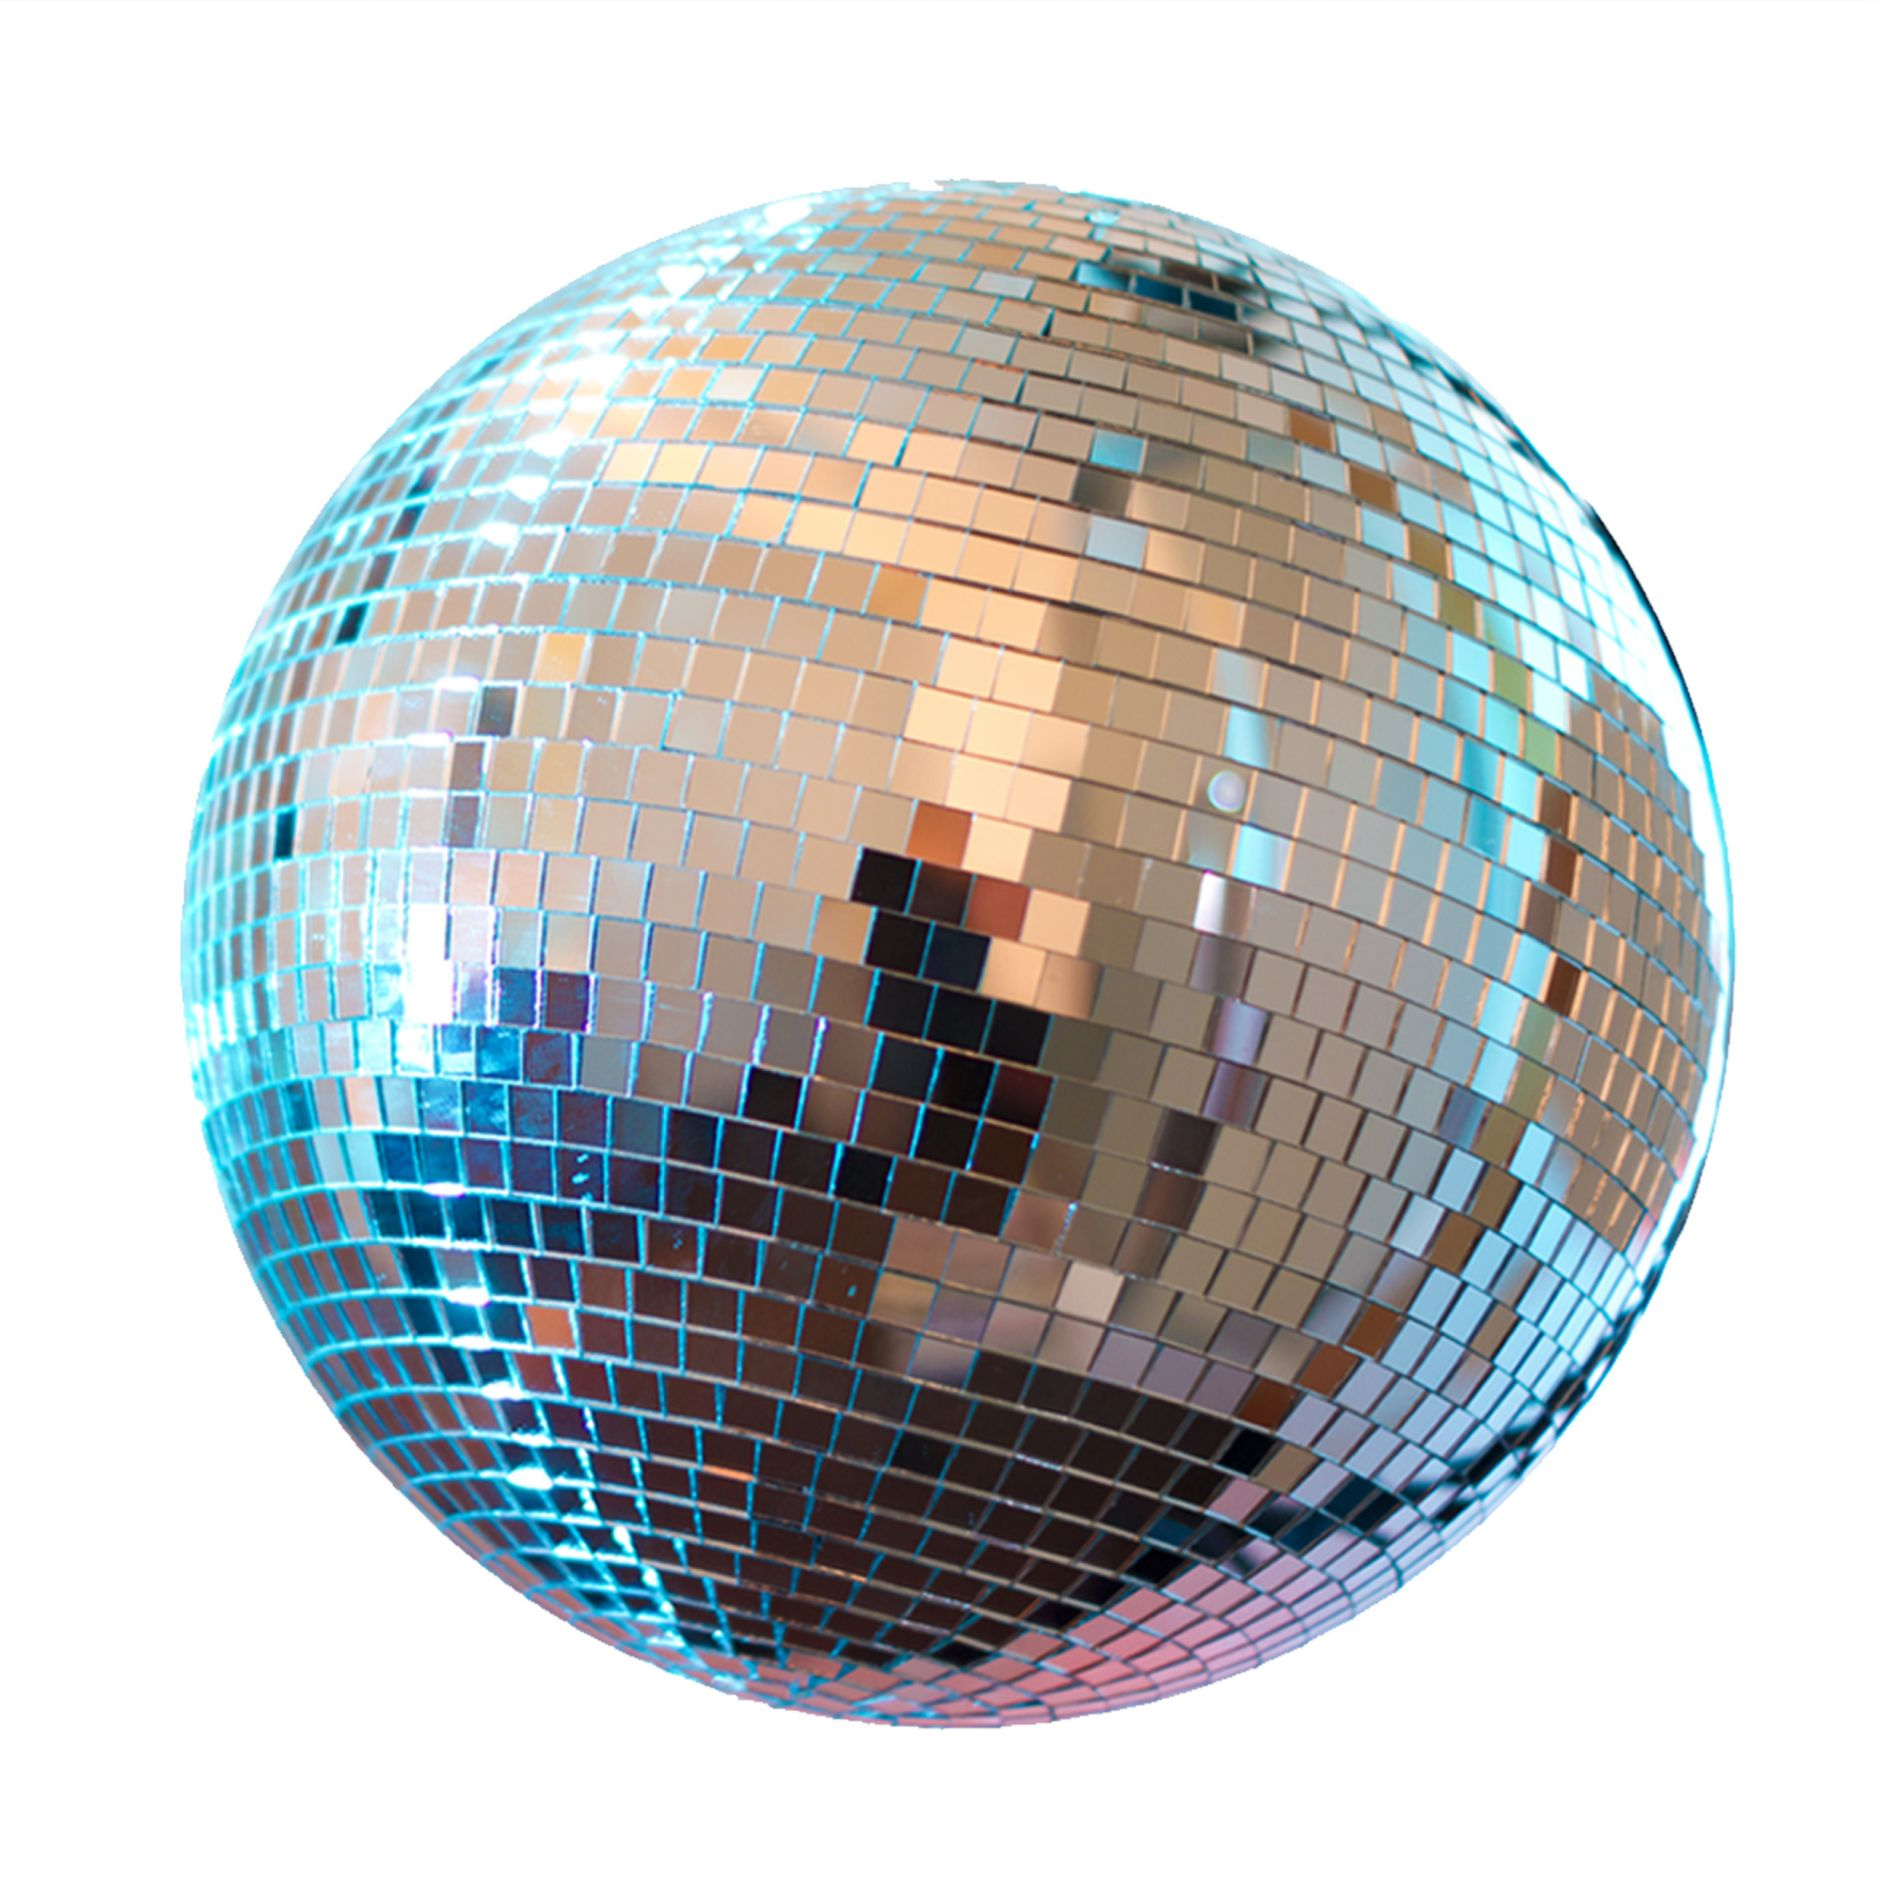 disco ball blank template imgflip. Black Bedroom Furniture Sets. Home Design Ideas